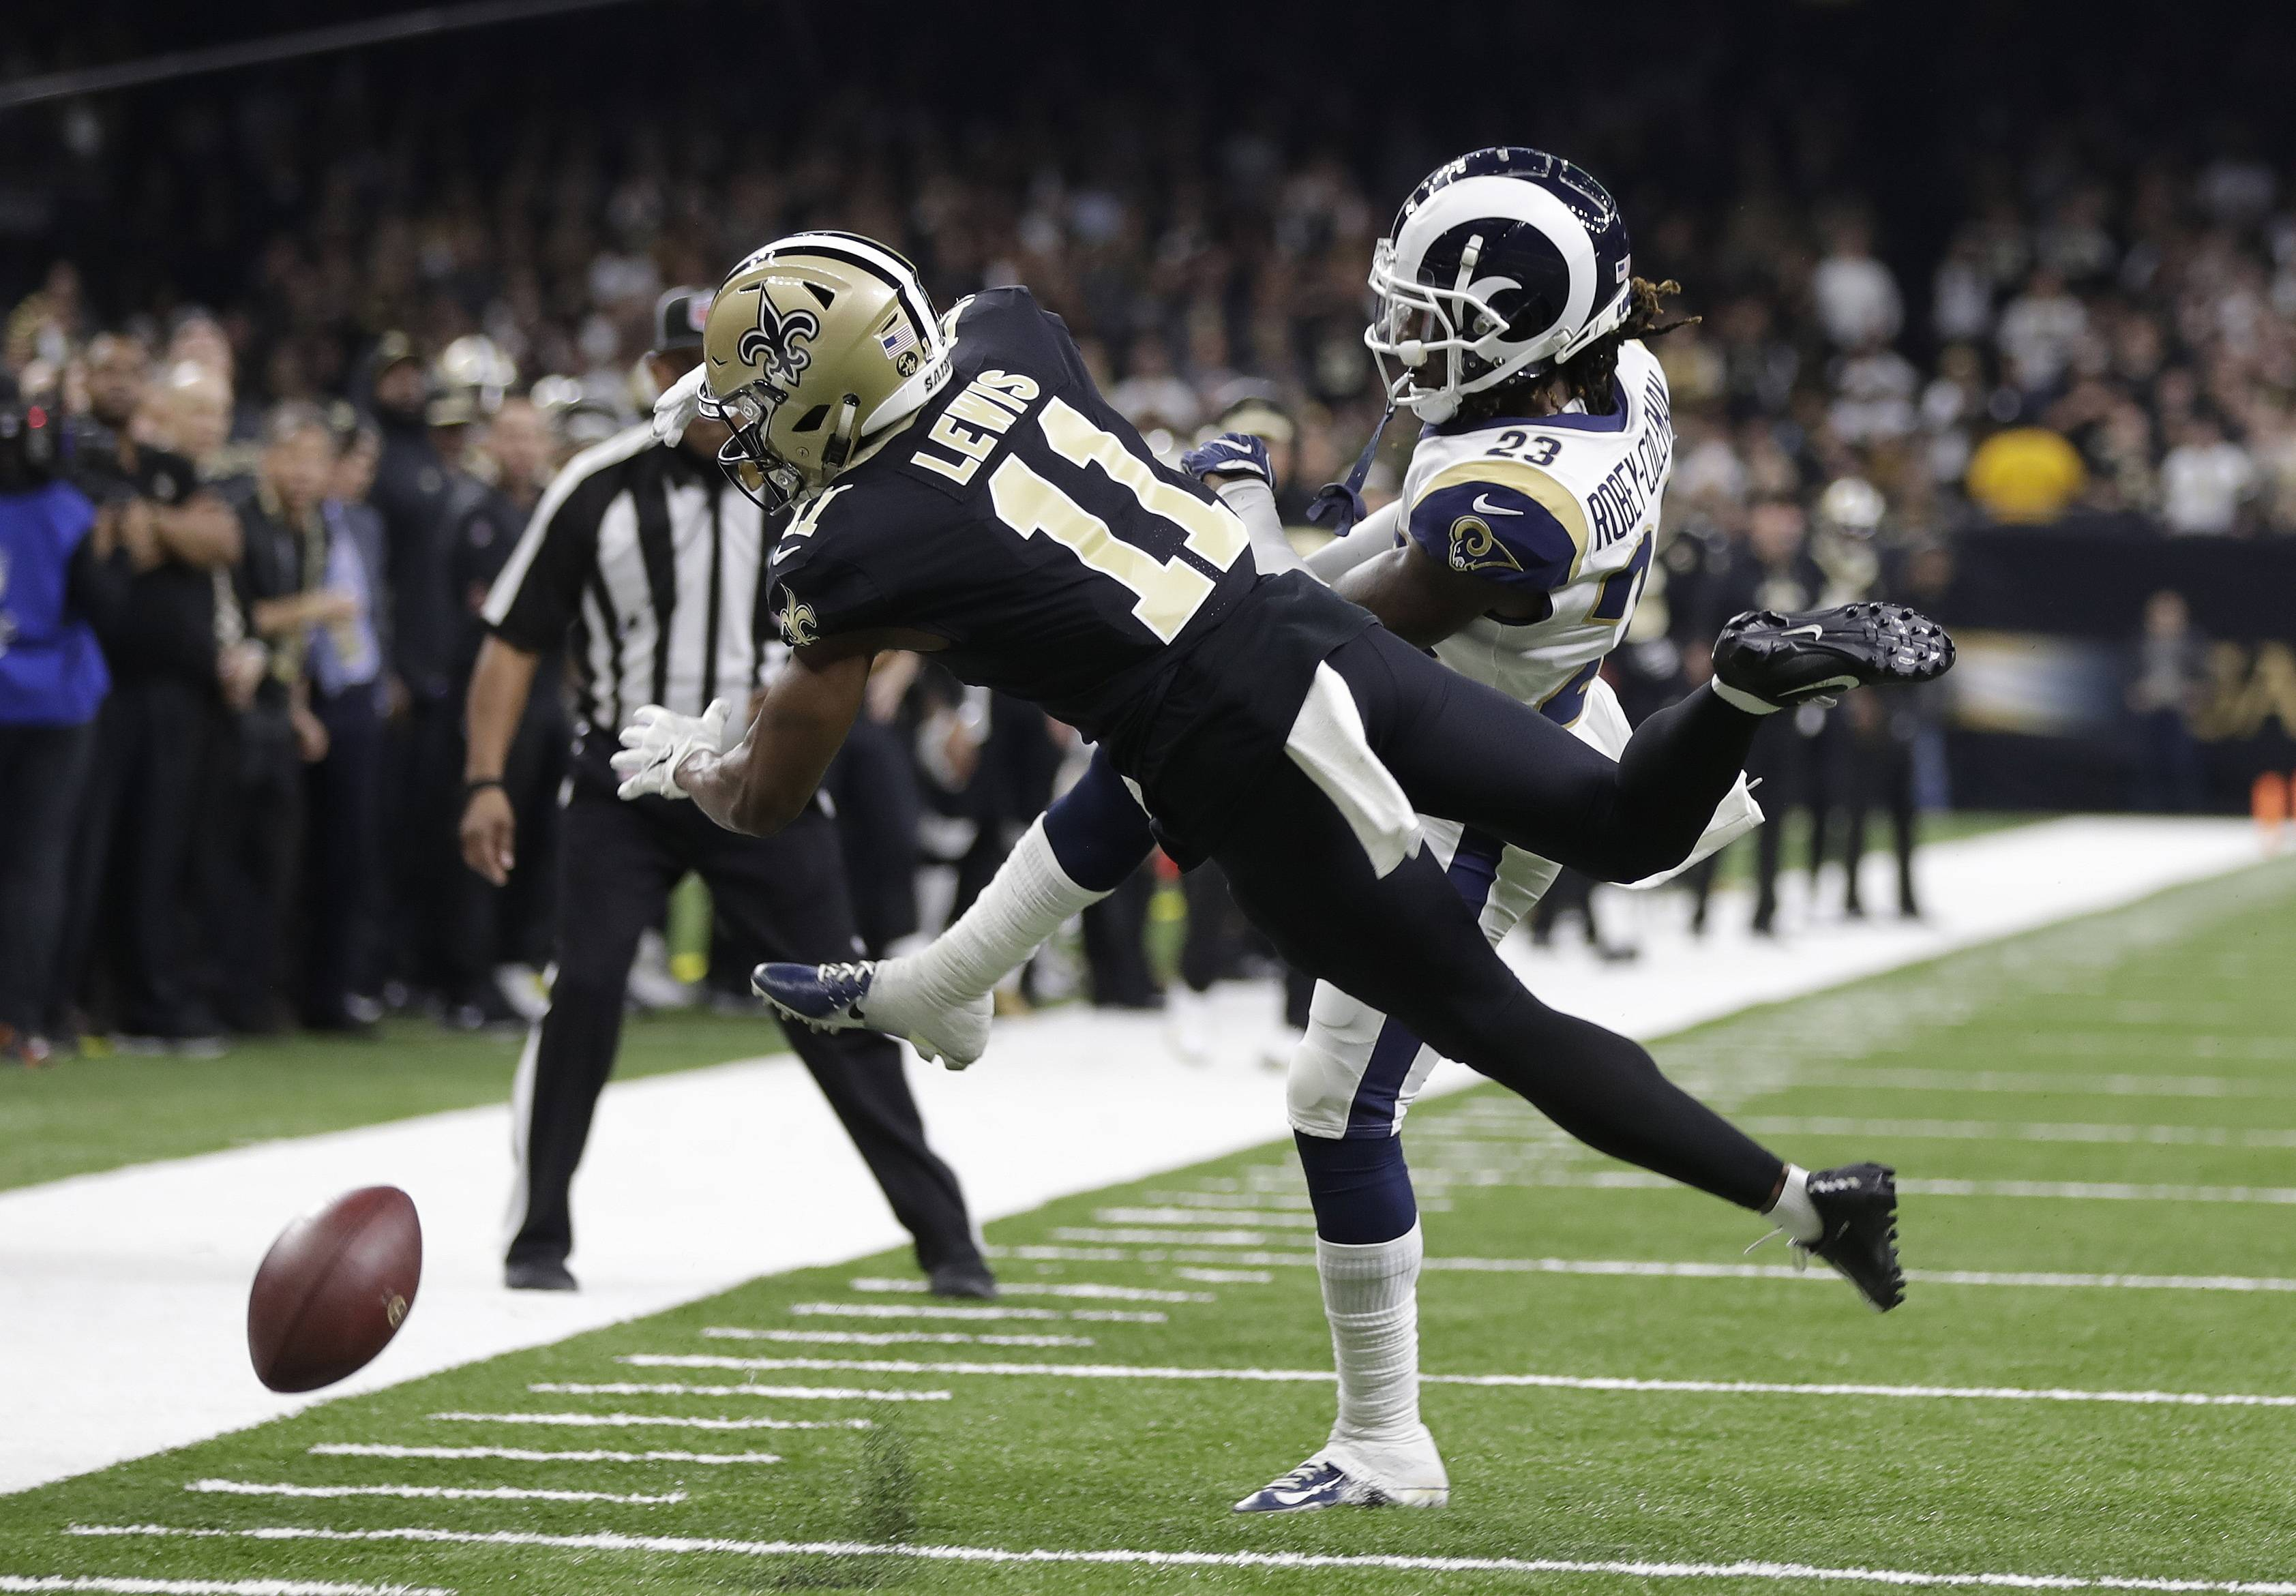 New Orleans Saints wide receiver Tommylee Lewis (11) works for a catch Sunday against Los Angeles Rams defensive back Nickell Robey-Coleman during the fourth quarter of the NFC championship game in New Orleans.